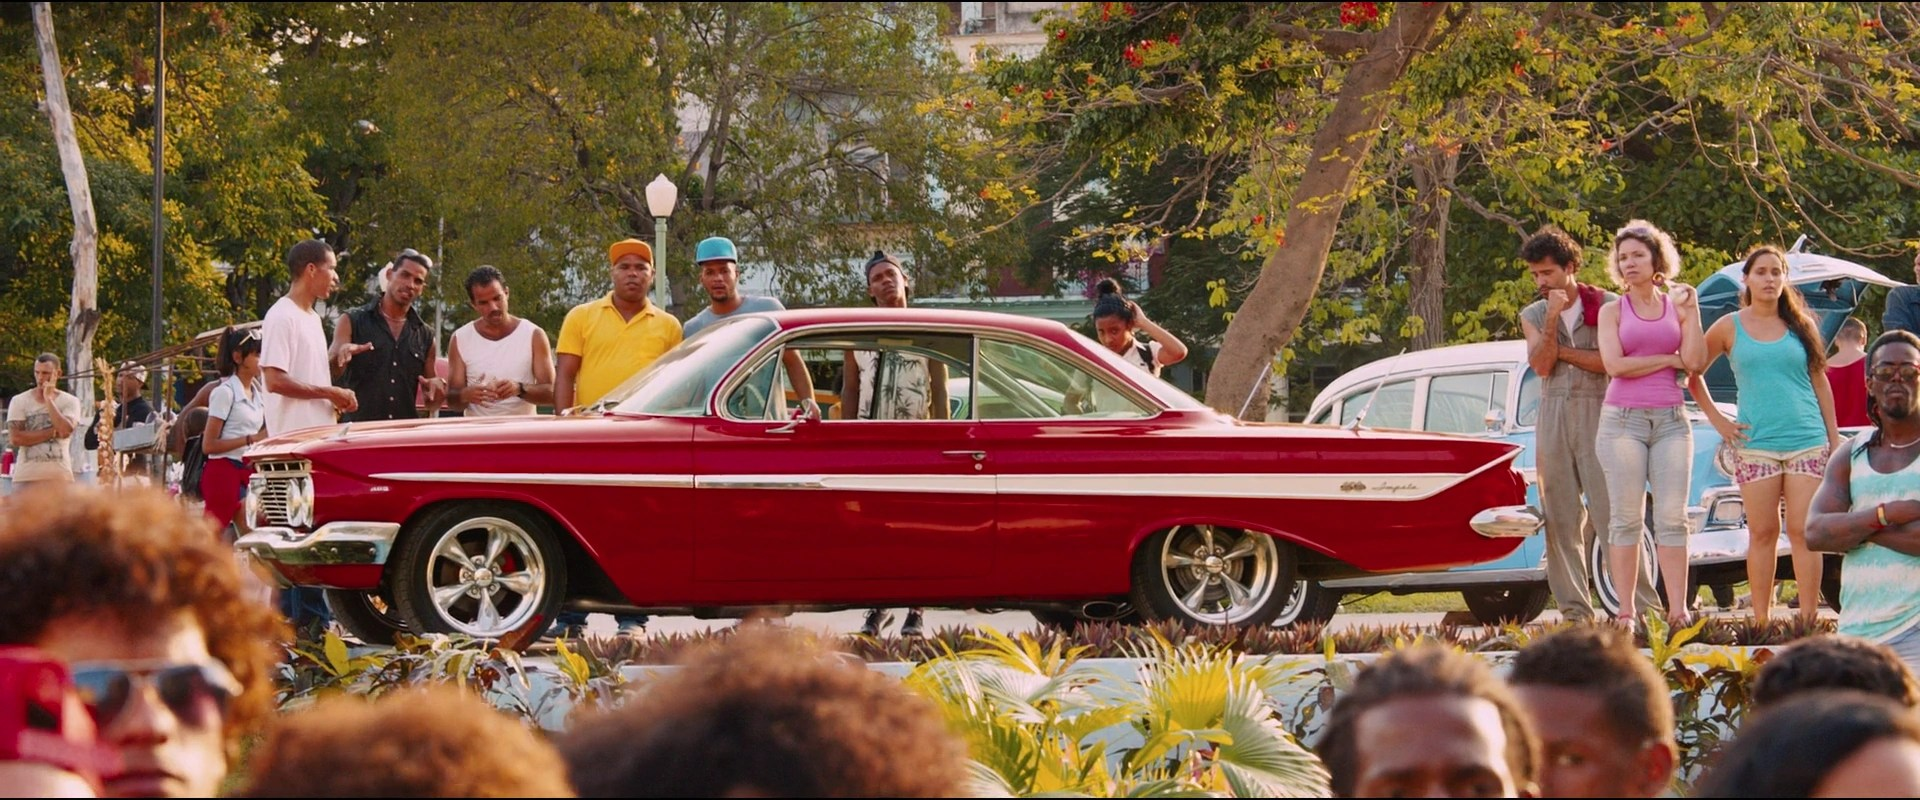 1961 Chevrolet Impala Sport Coupe   The Fast and the Furious Wiki     1961 Chevrolet Impala Sport Coupe